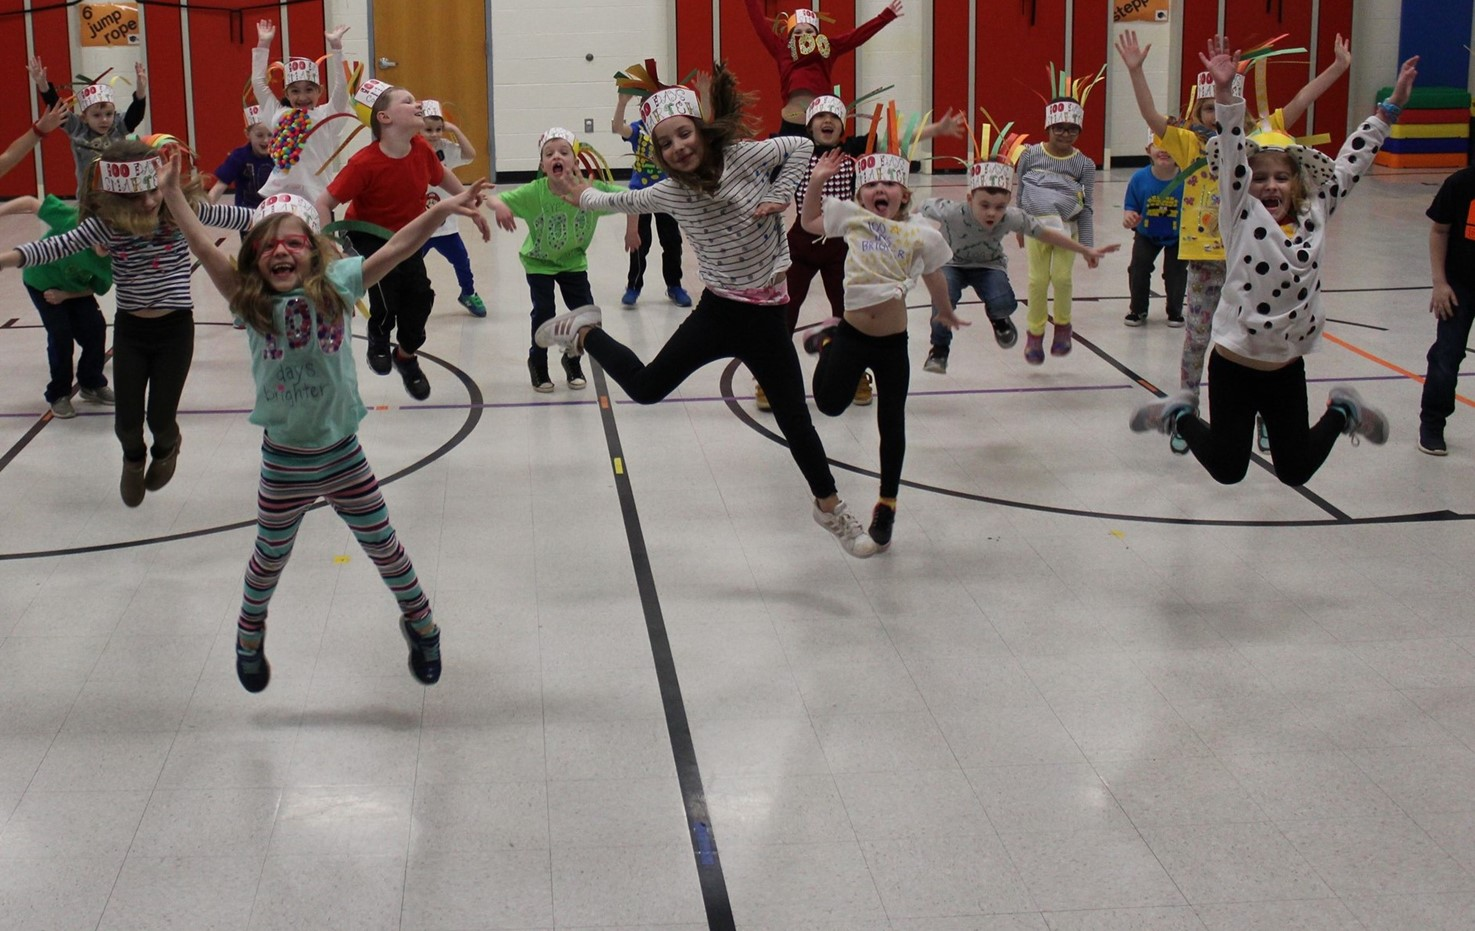 Penn students jumping for joy on the 100th day of school